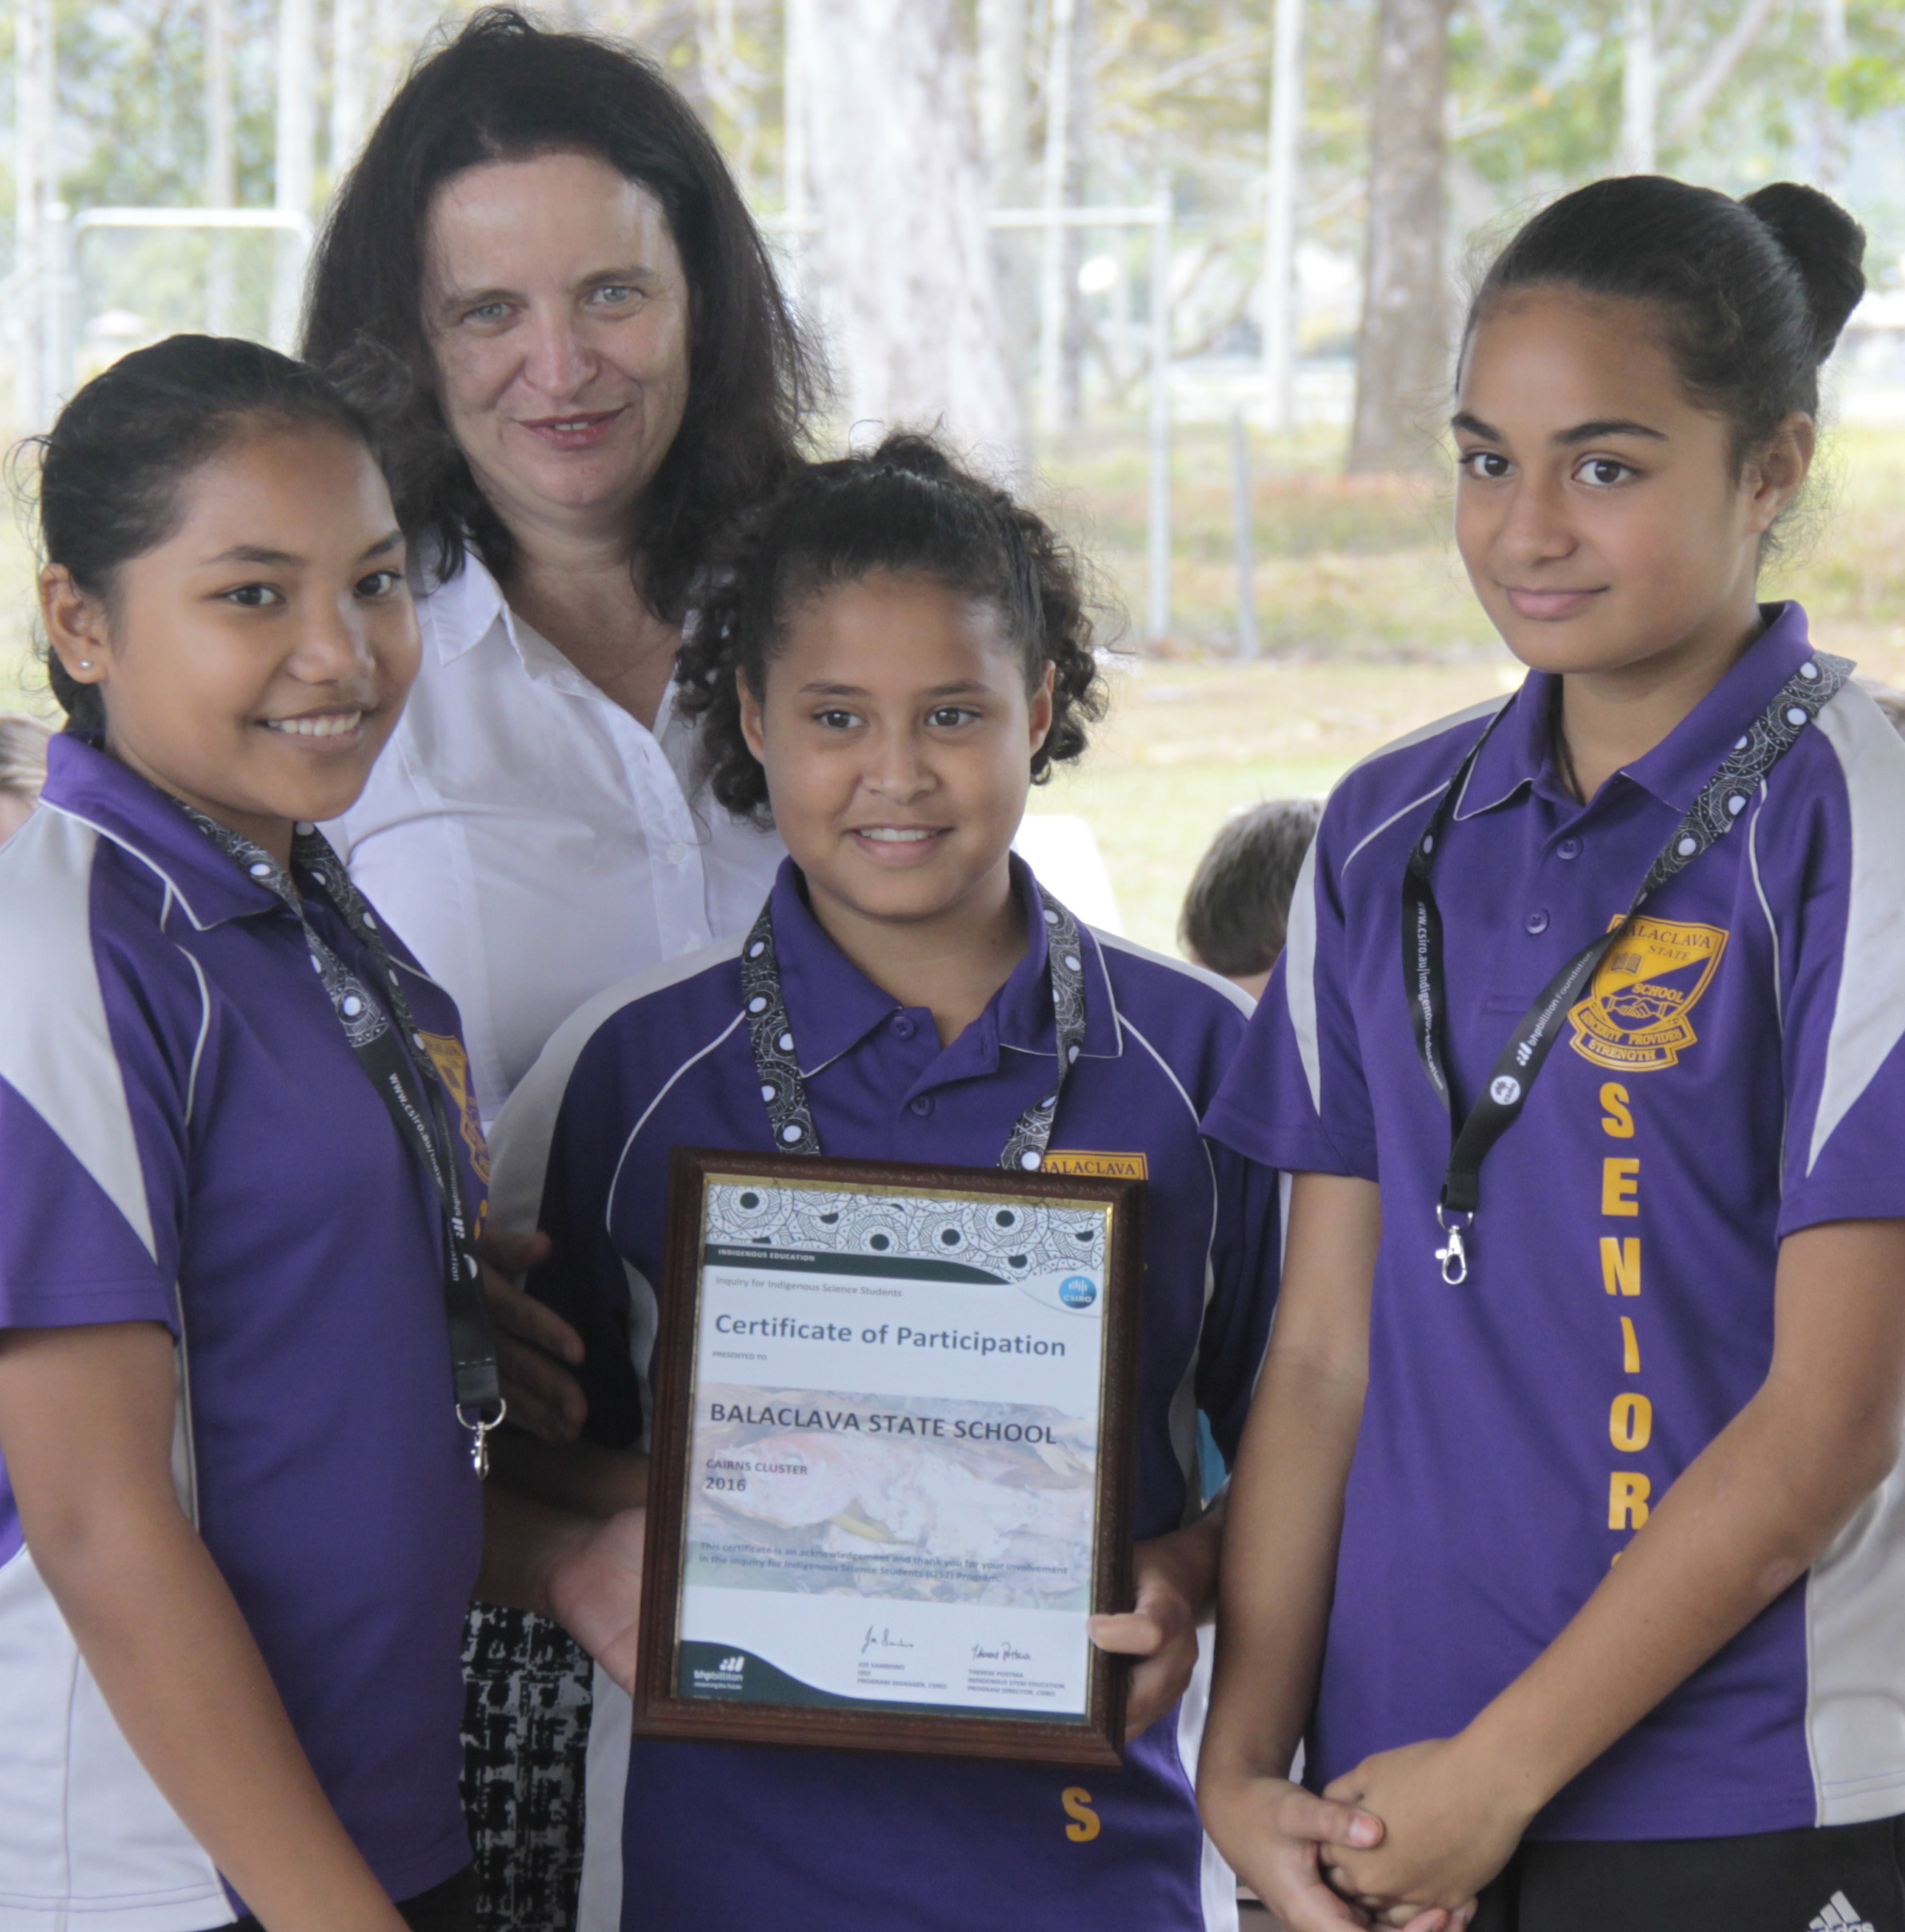 Image of Therese Postma, Indigenous STEM Education Program Director, presenting Balaclava State School's certificate of participation in the Inquiry for Indigenous Science Students program.